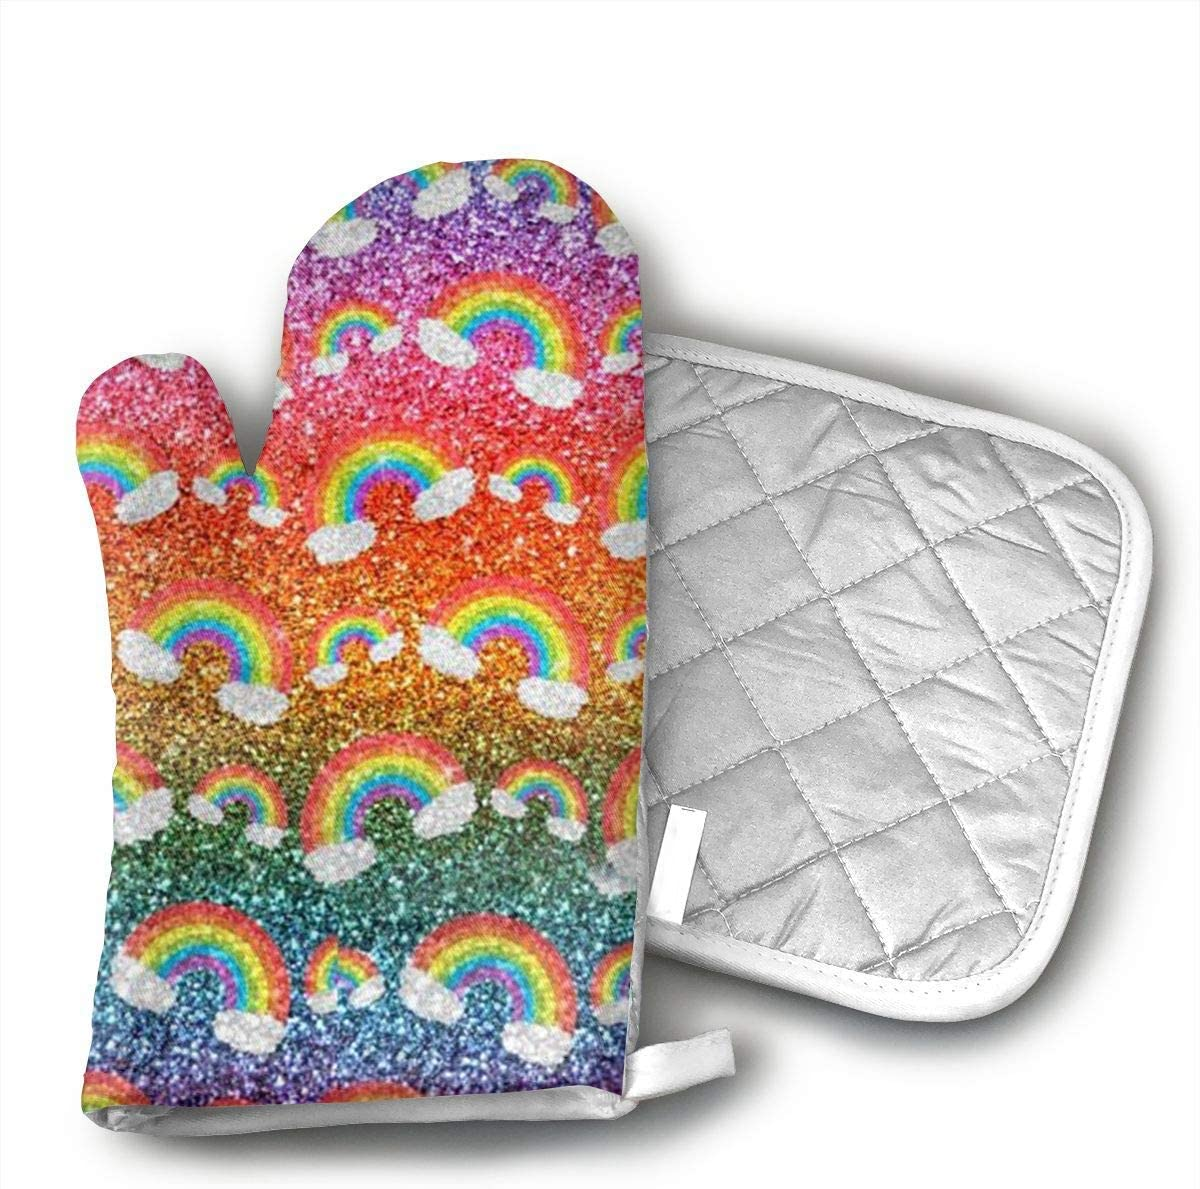 NoveltyGloves Faux Glitter Rainbows Oven Mitts,Professional Heat Resistant Microwave BBQ Oven Insulation Thickening Cotton Gloves Baking Pot Mitts Soft Inner Lining Kitchen Cooking